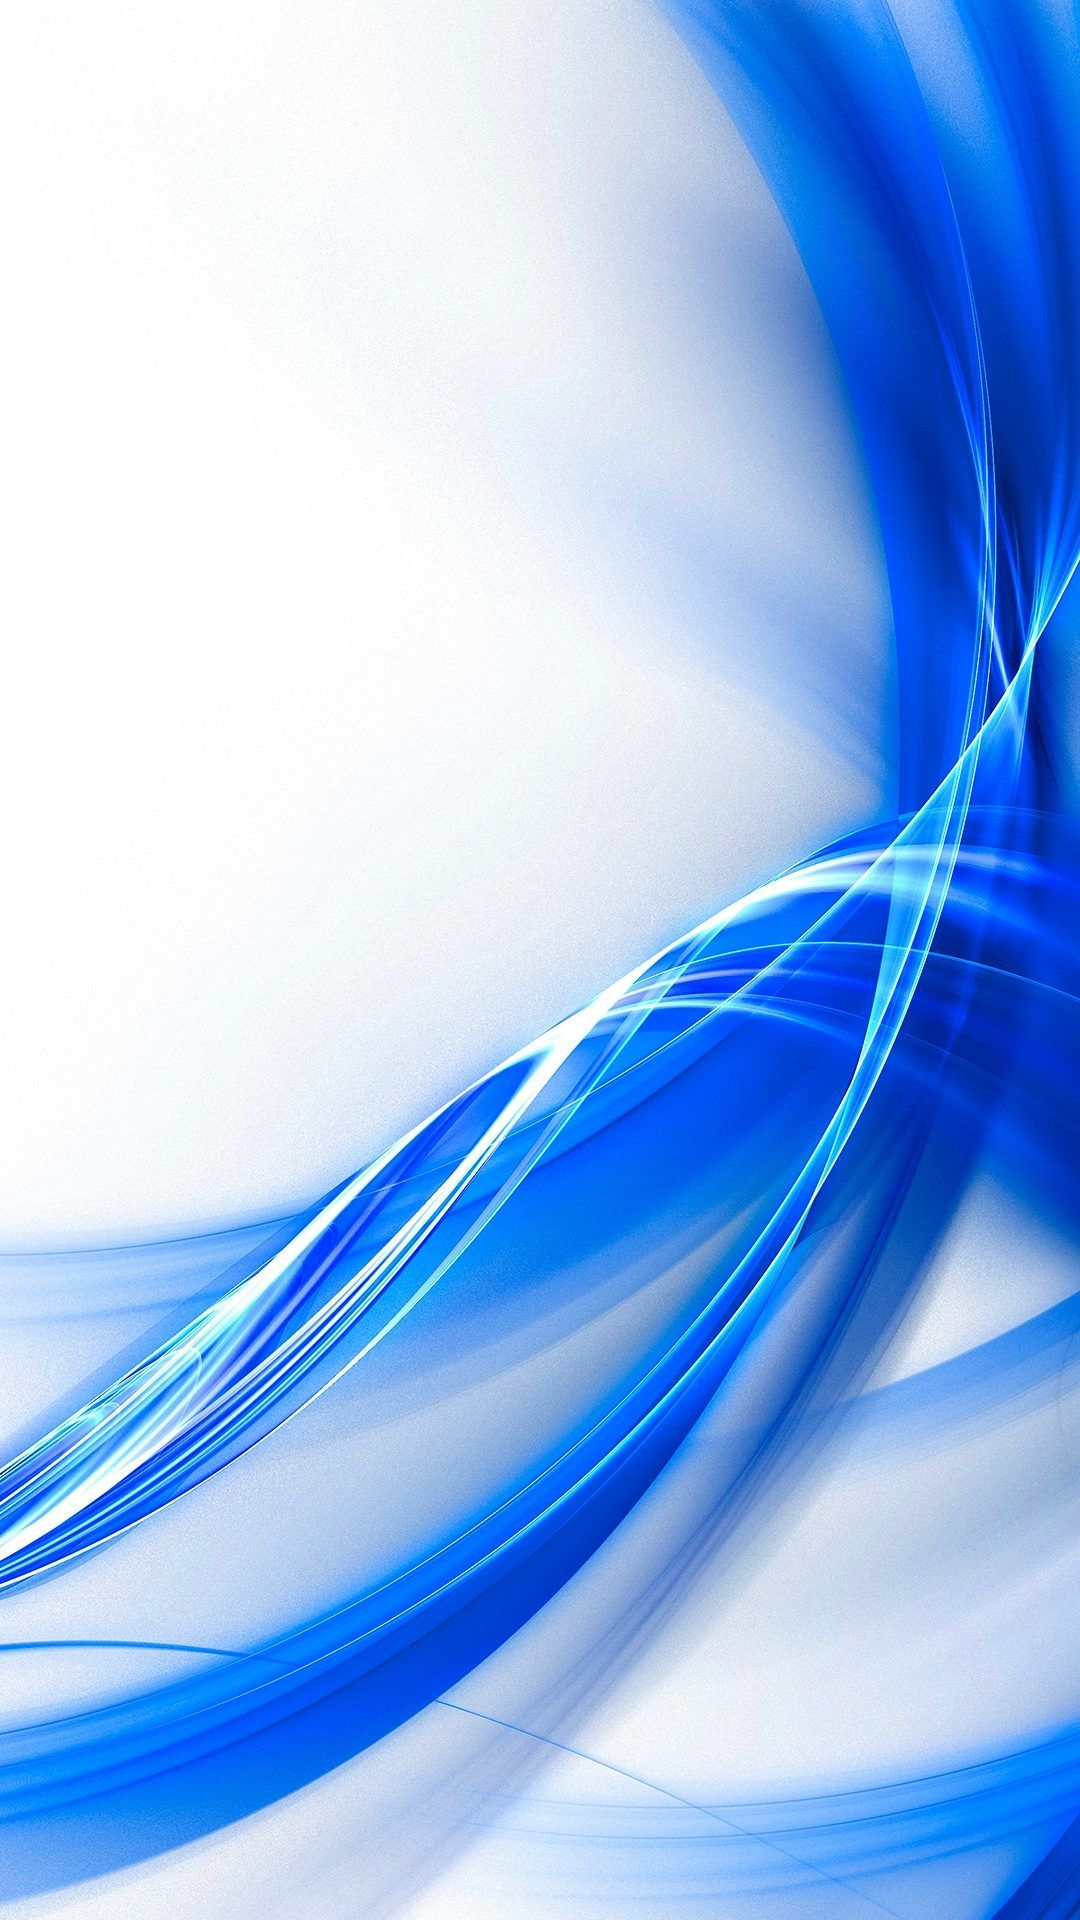 Blue And White Wallpaper Download